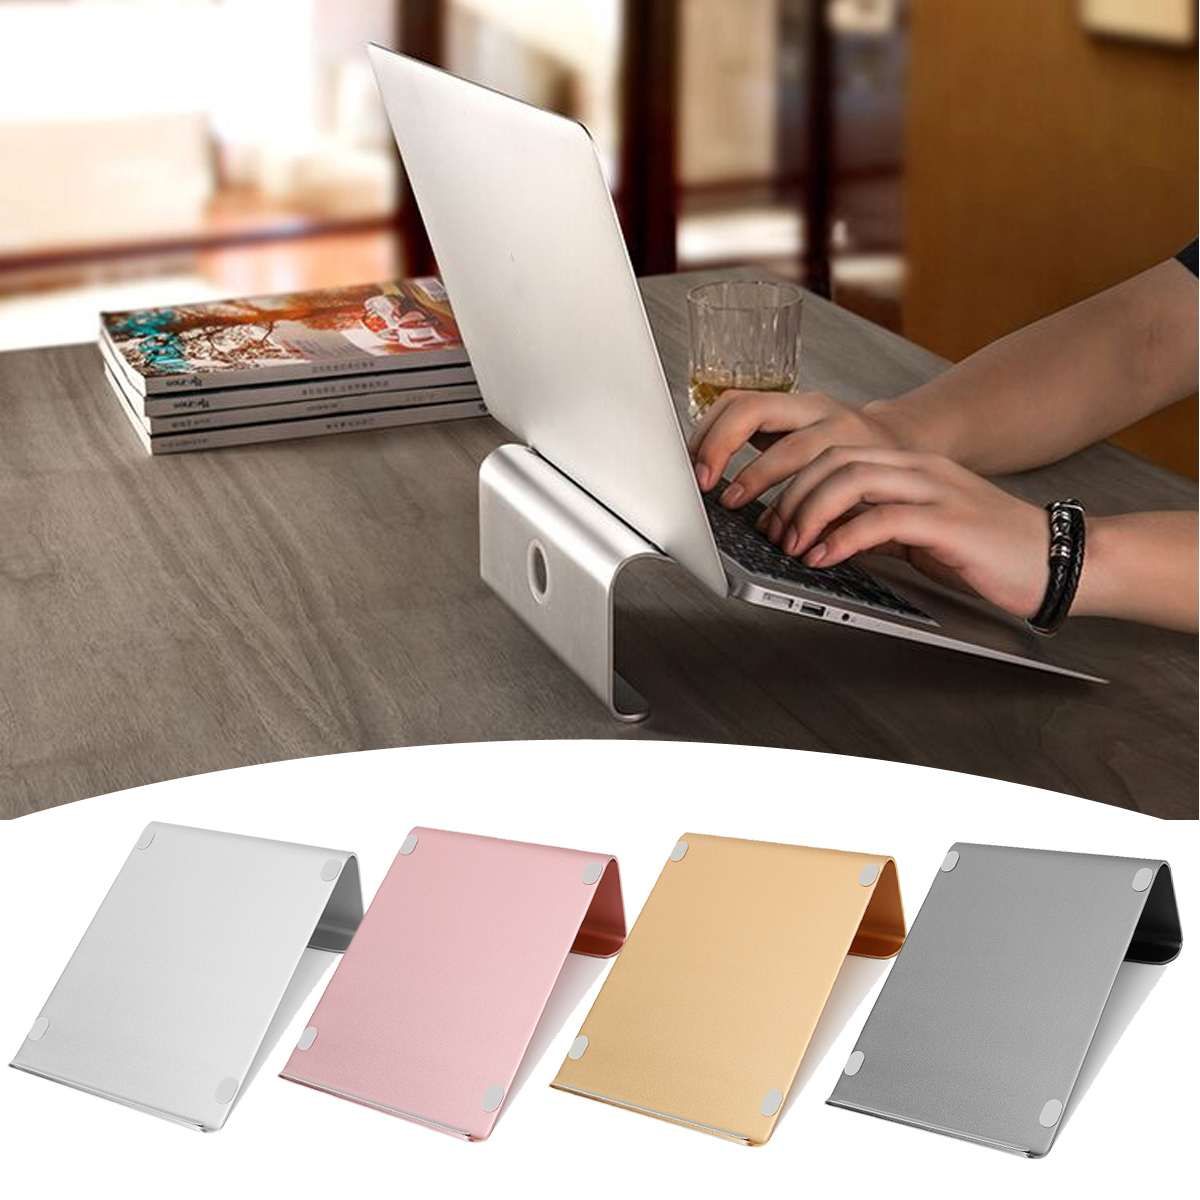 YUNAI Aluminum Alloy Notebook Bracket Cooling Base Adjustable Laptop Stand Holder Portable For 11-17 Inch Tablet Laptop Notebook